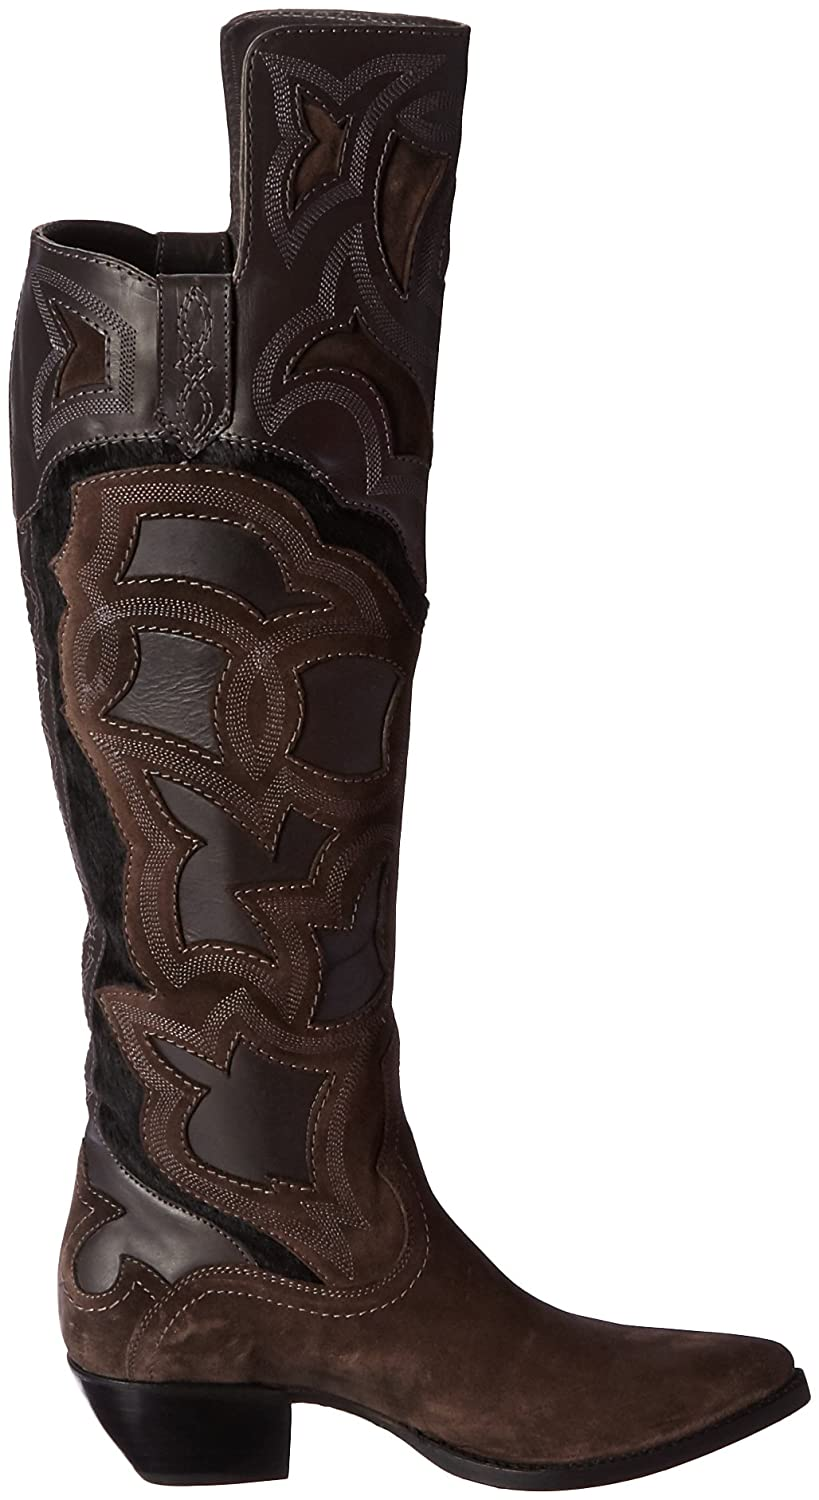 FRYE Women's Shane Embroidered Cuff Western Boot B01BNVSQDM 5.5 B(M) US|Charcoal